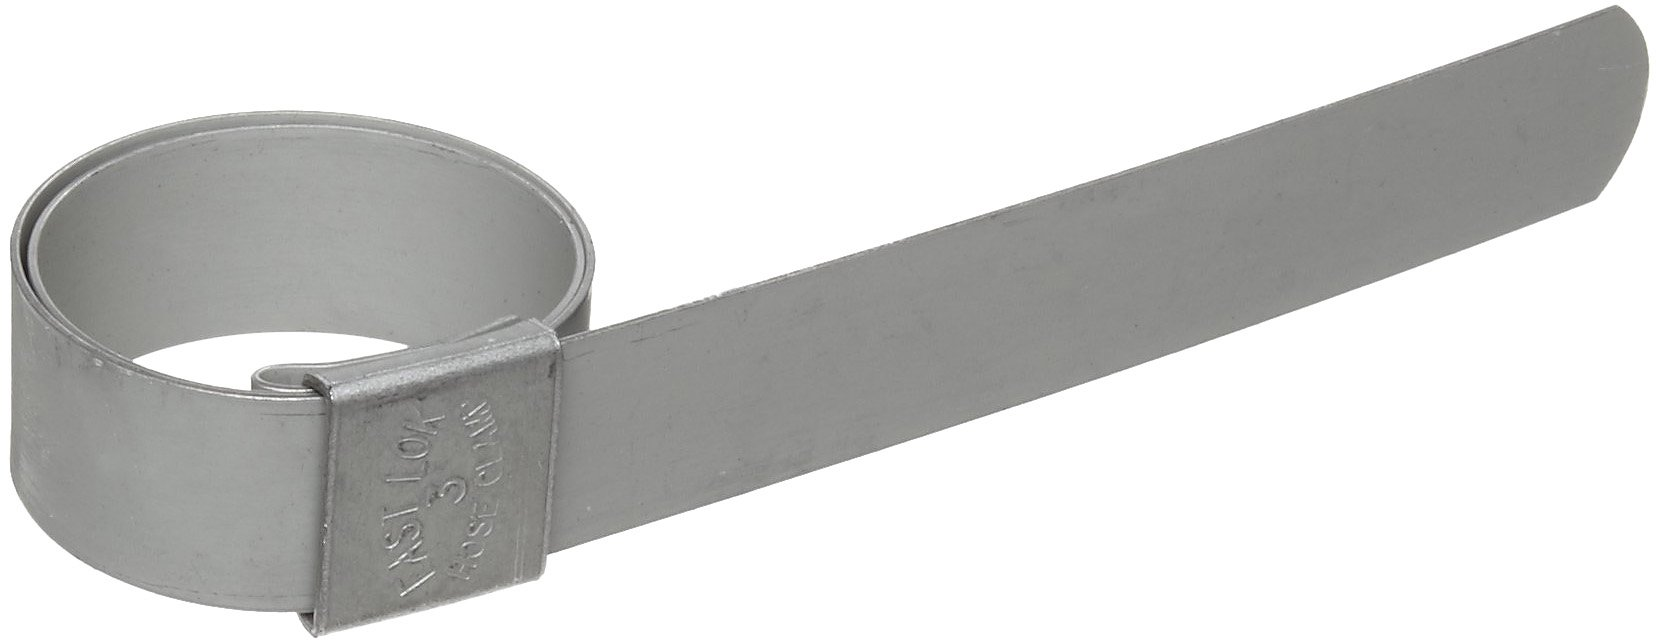 Dixon F4 Galvanized Steel Pre-Formed Center Punch Band Clamp, 5/8'' Band Width, 1'' ID (Pack of 100)